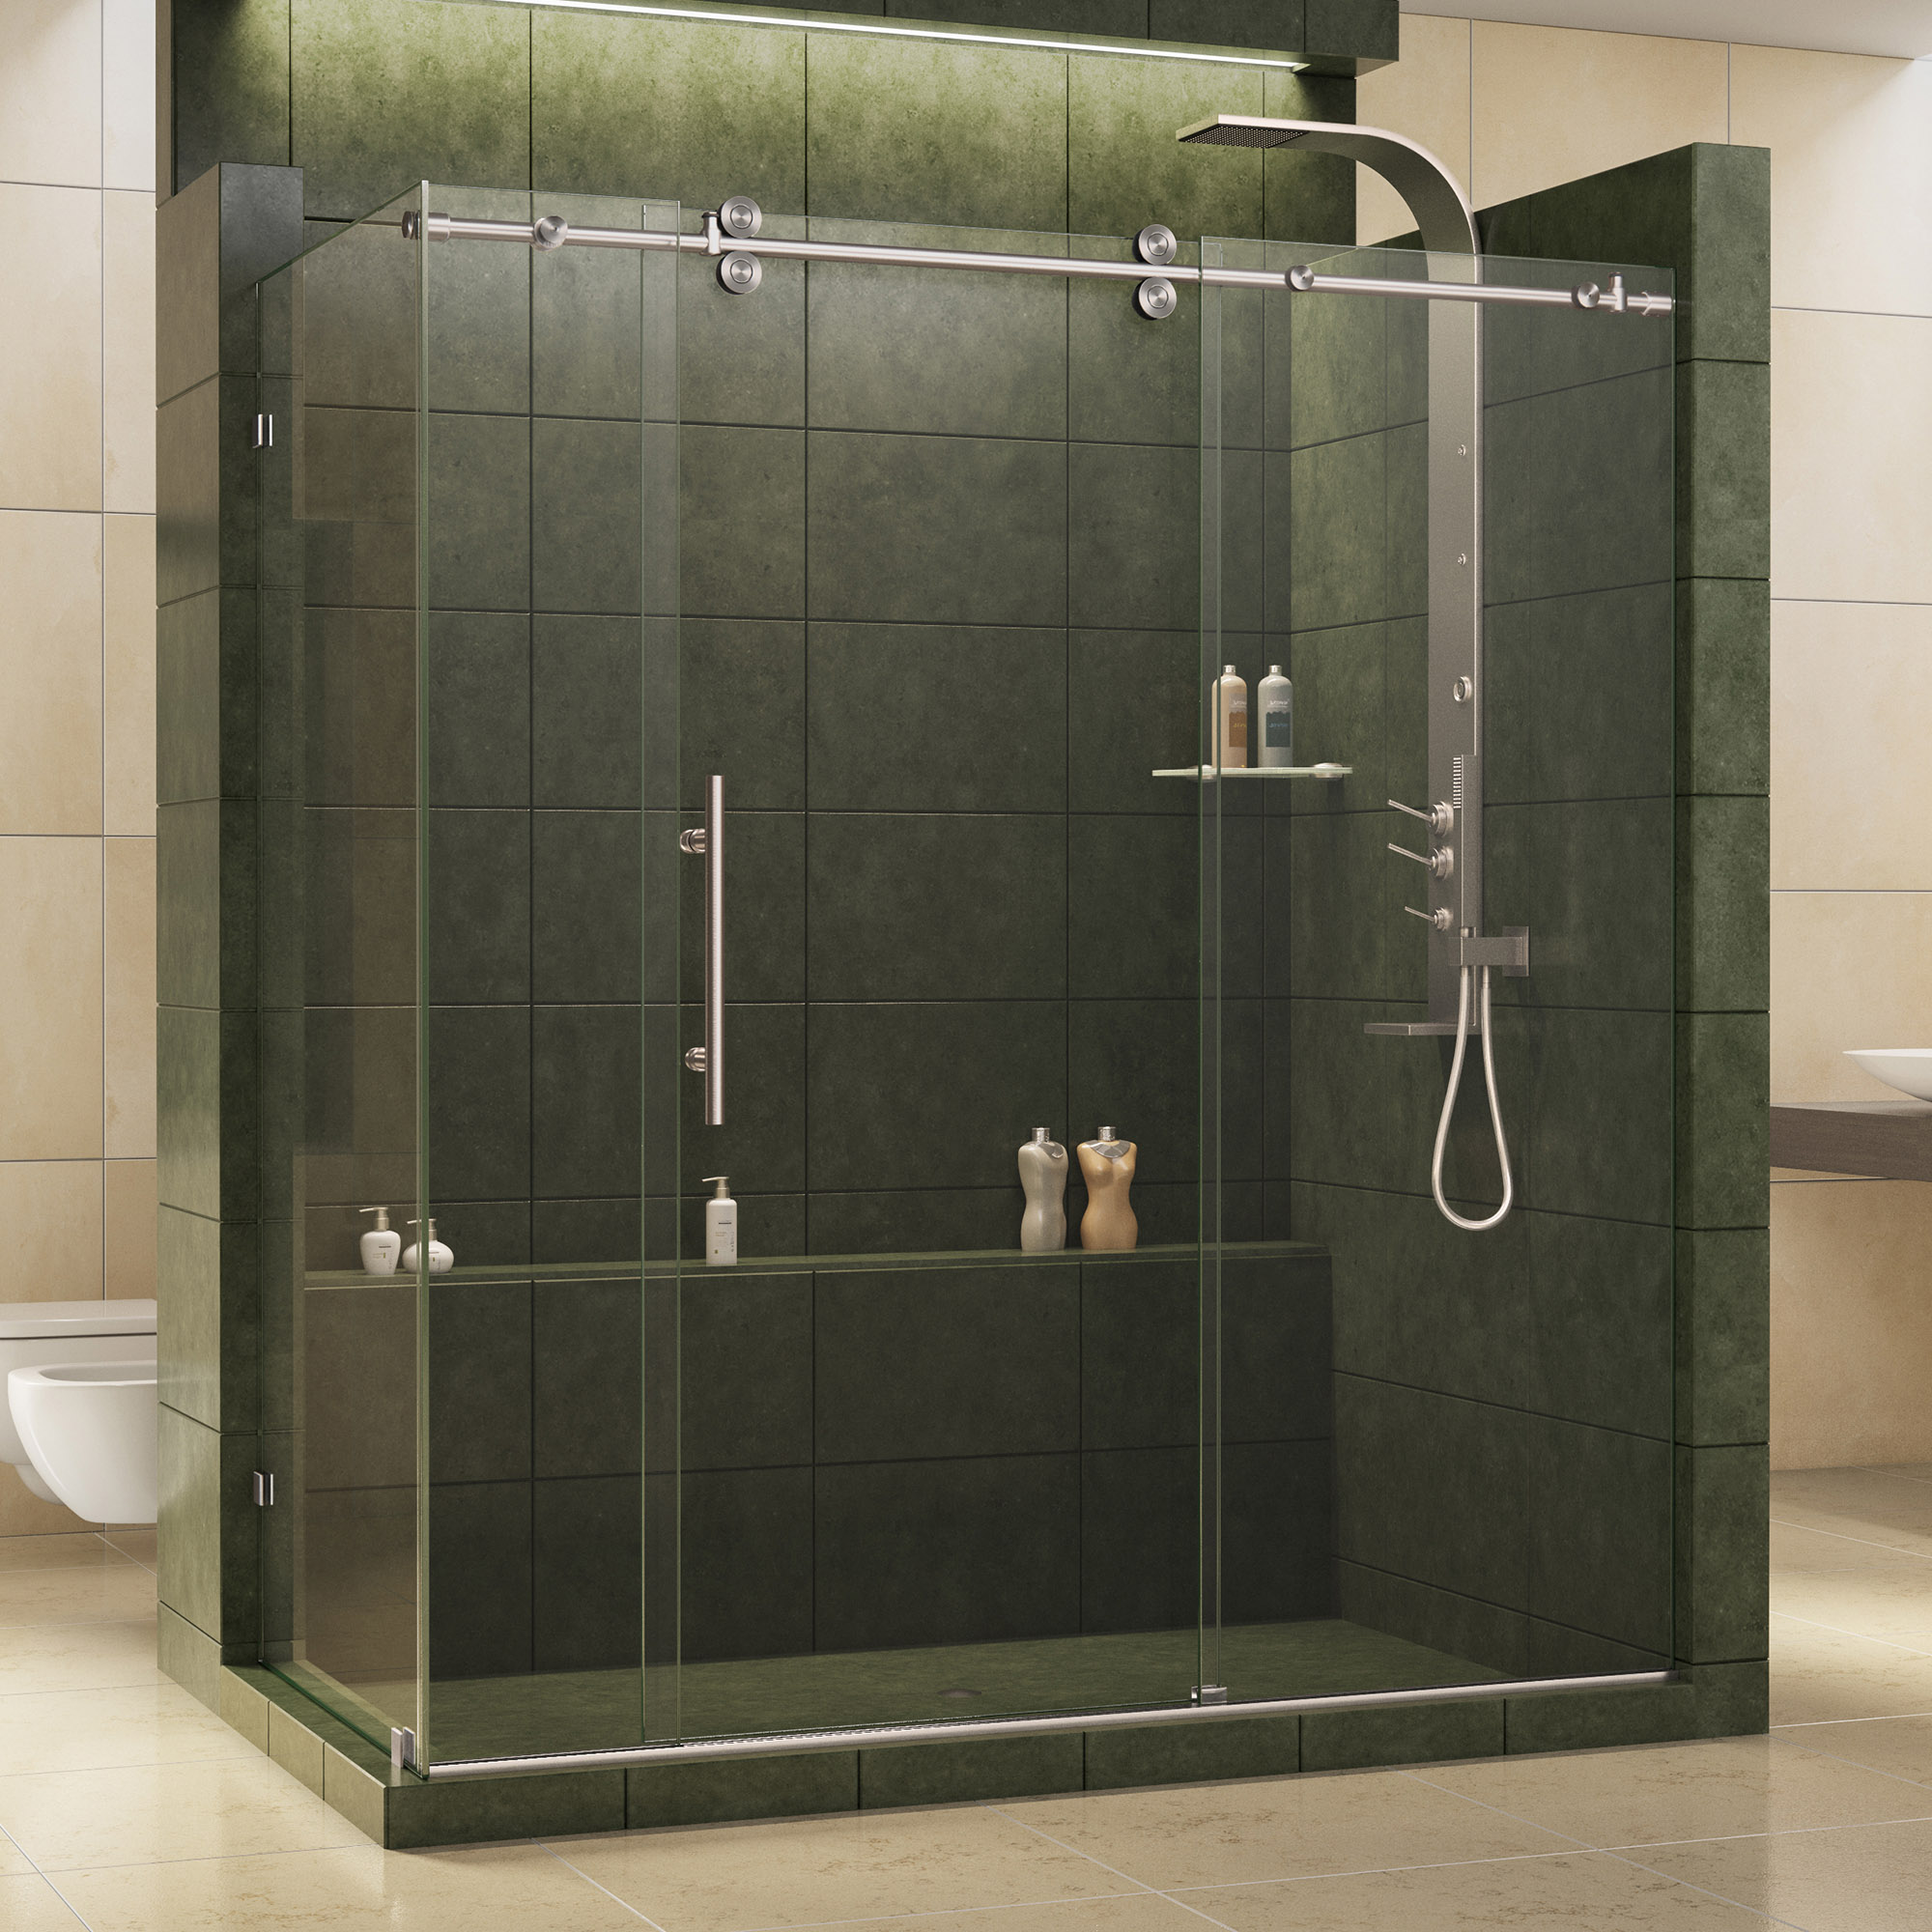 DreamLine Enigma 36 in. D x 68 1/2 - 72 1/2 in. W x 79 in. H Sliding Shower Enclosure in Brushed Stainless Steel, 1/2 in. Glass